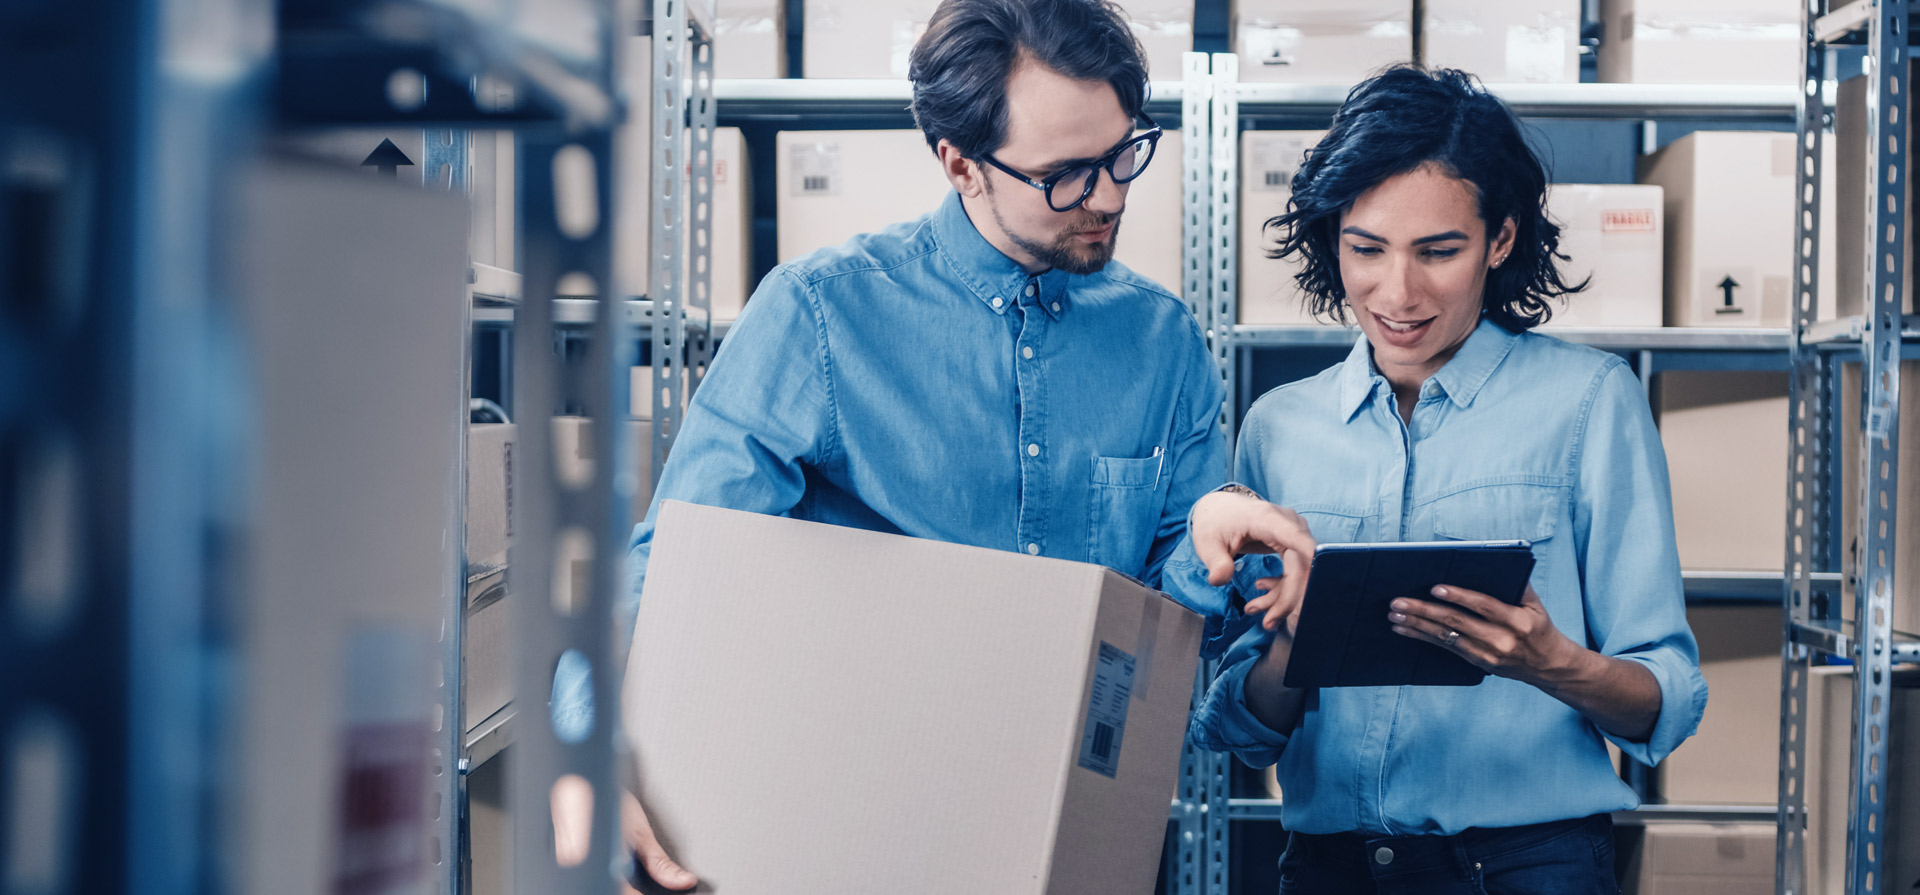 Optimize your Inventory using predictive machine learning